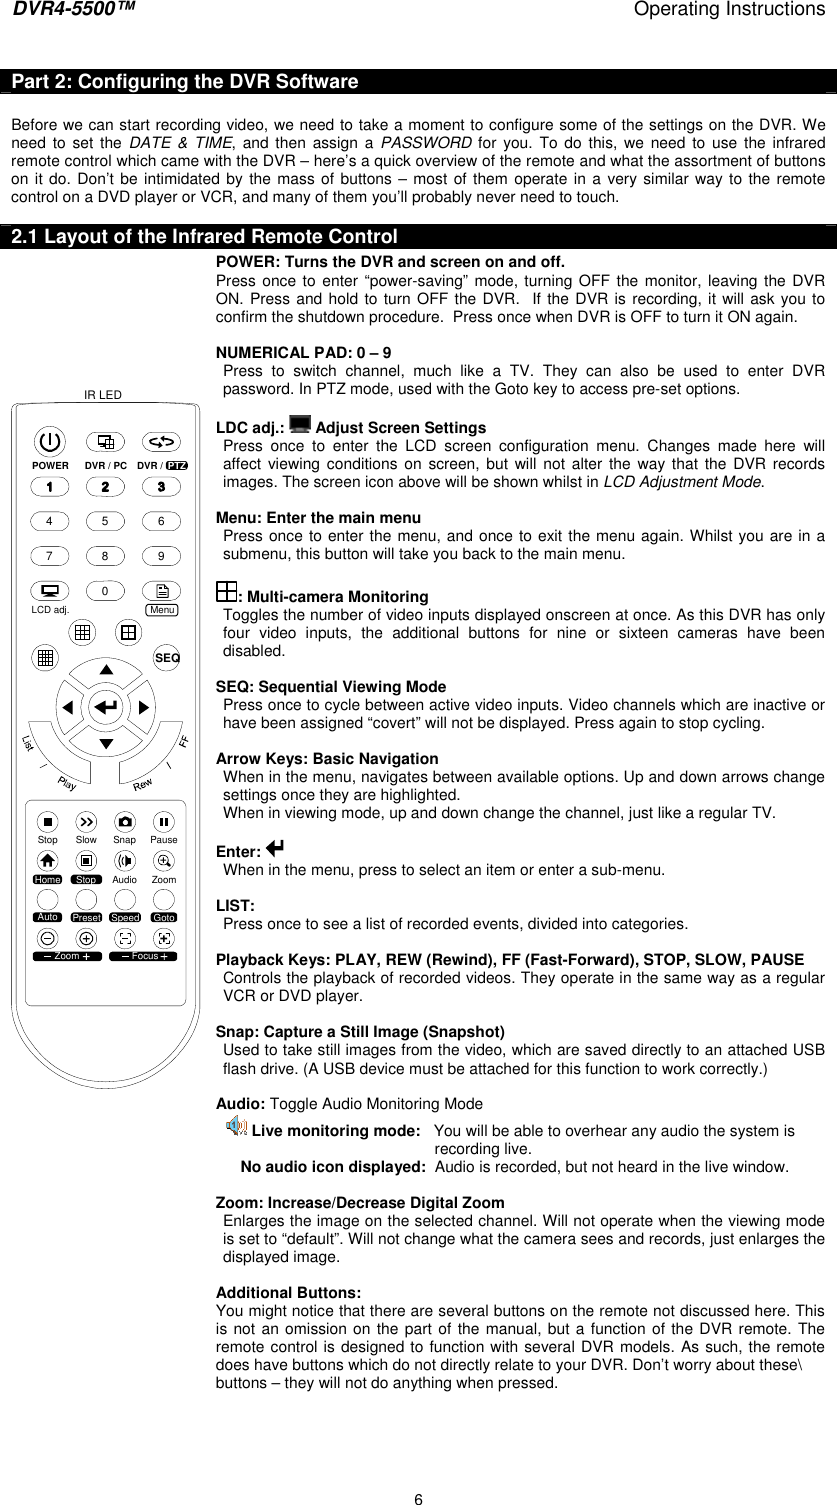 usermanual wiki/Swann/SwannDvr45500UsersManual3591